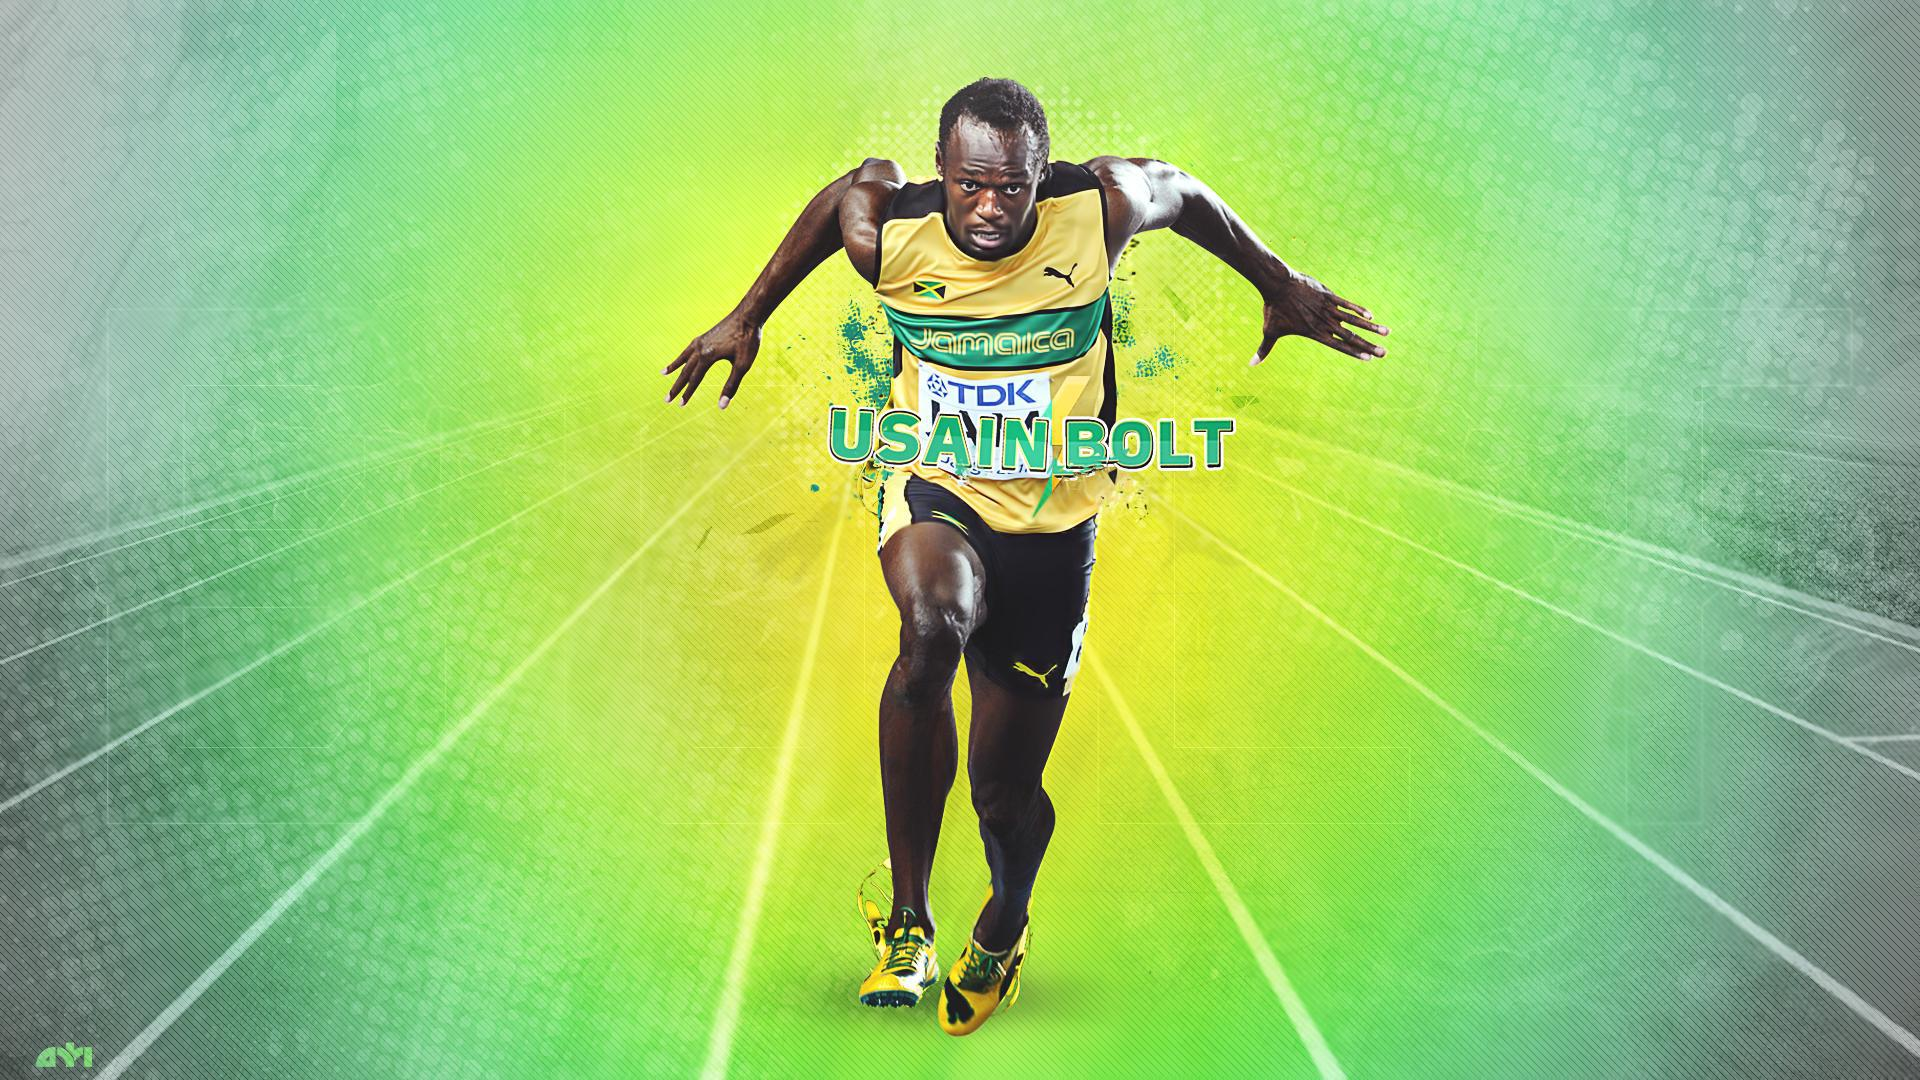 Usain Bolt Wallpaper Hd 2018